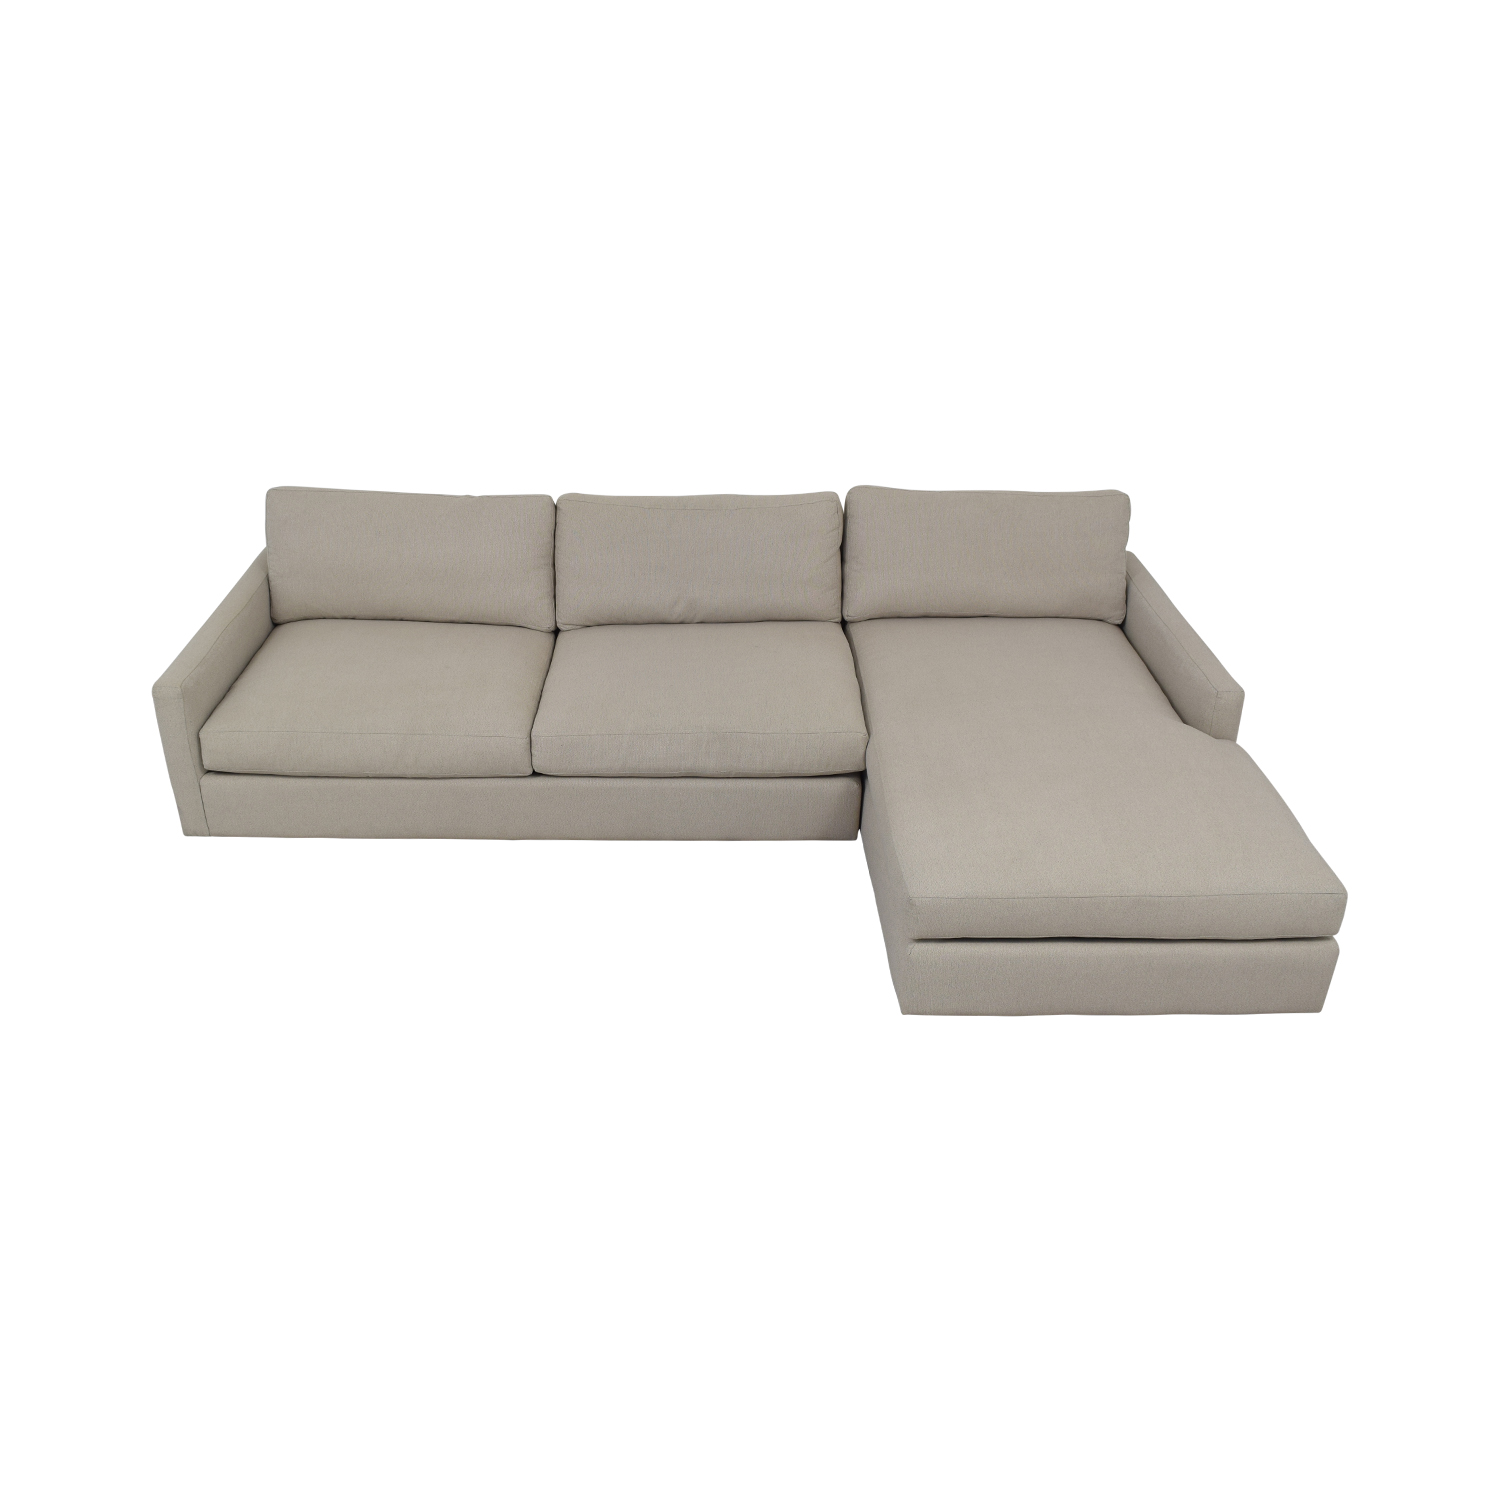 Room & Board Room & Board Linger Sofa with Chaise nj